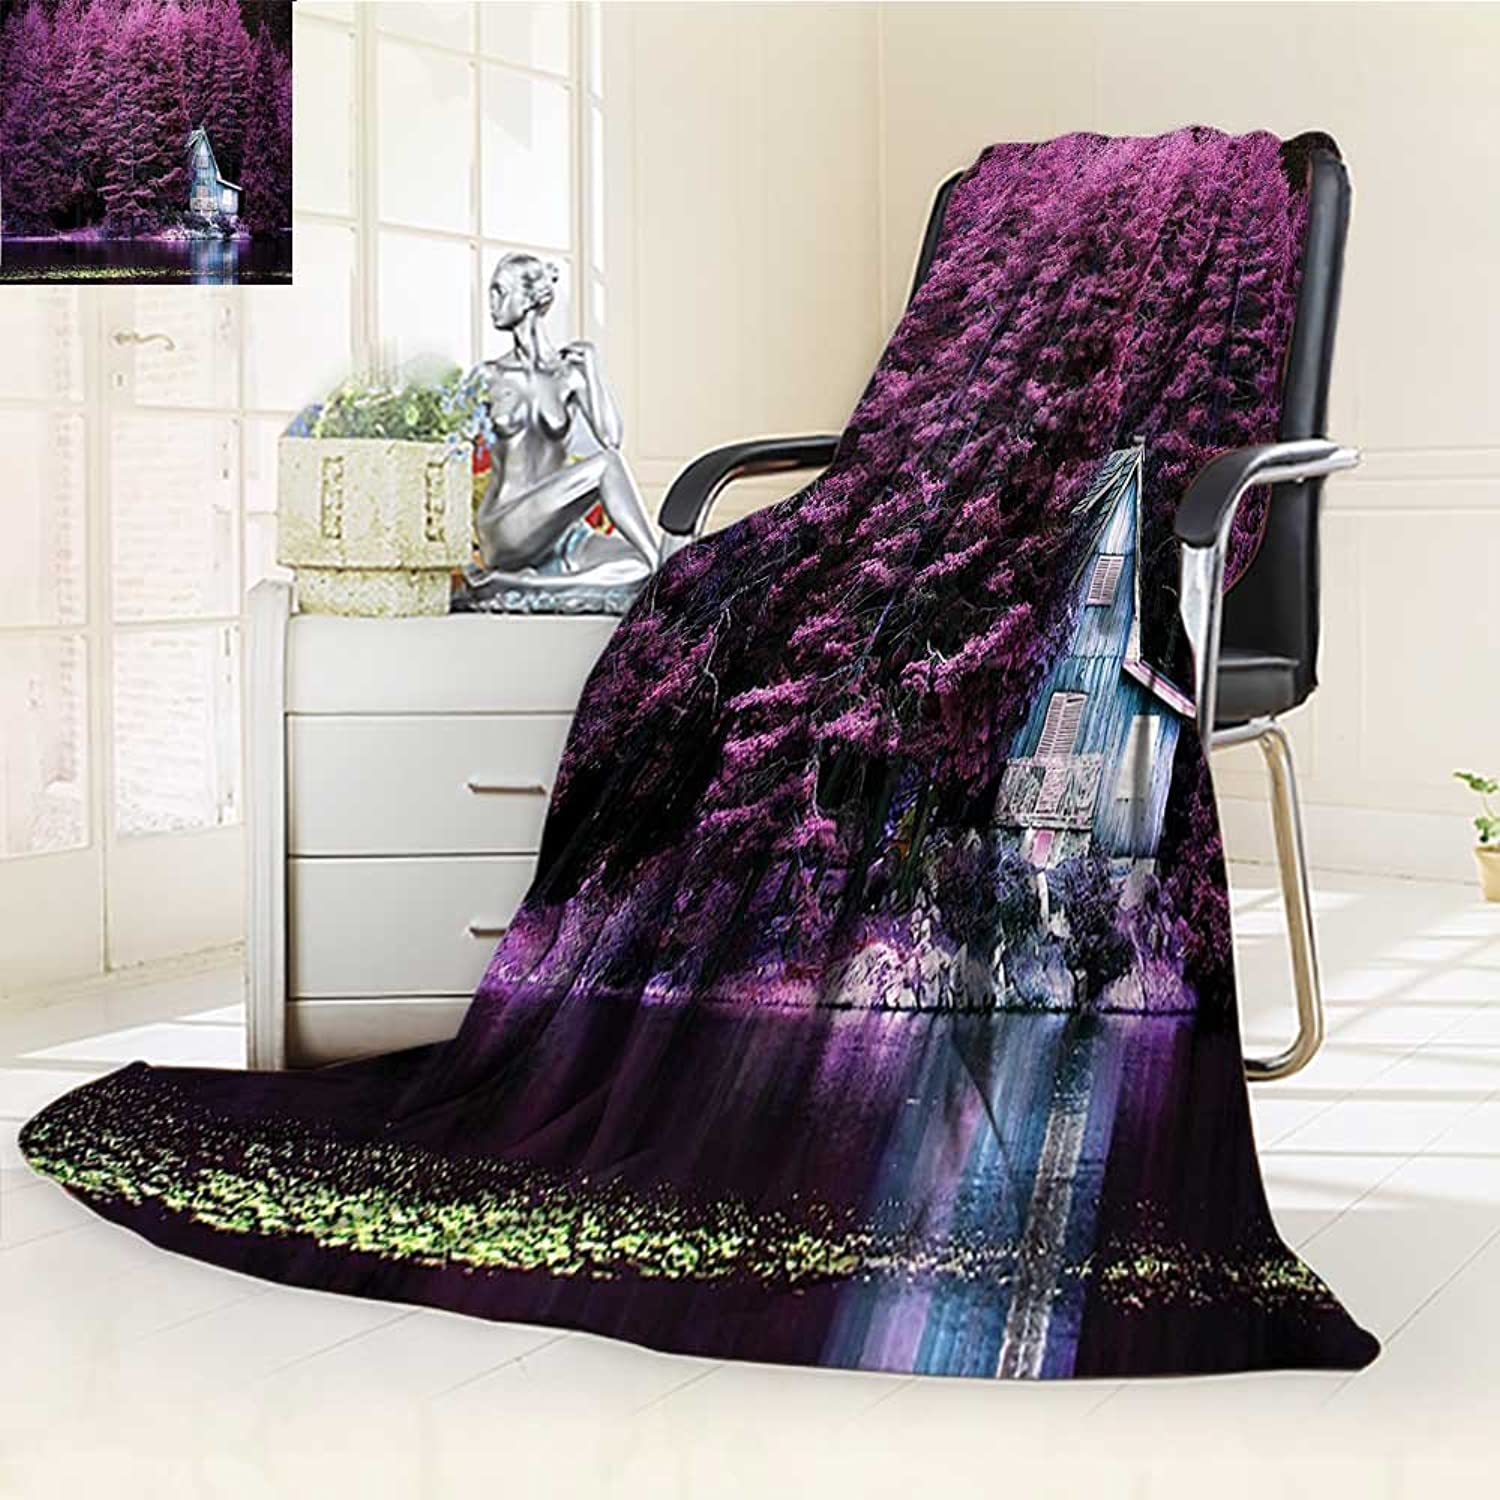 YOYI-HOME Digital Printing Duplex Printed Blanket by The Lake with bluee Wooden Rustic Lakehouse Lodge Romantic Spring Nature Purple Summer Quilt Comforter  W59 x H39.5